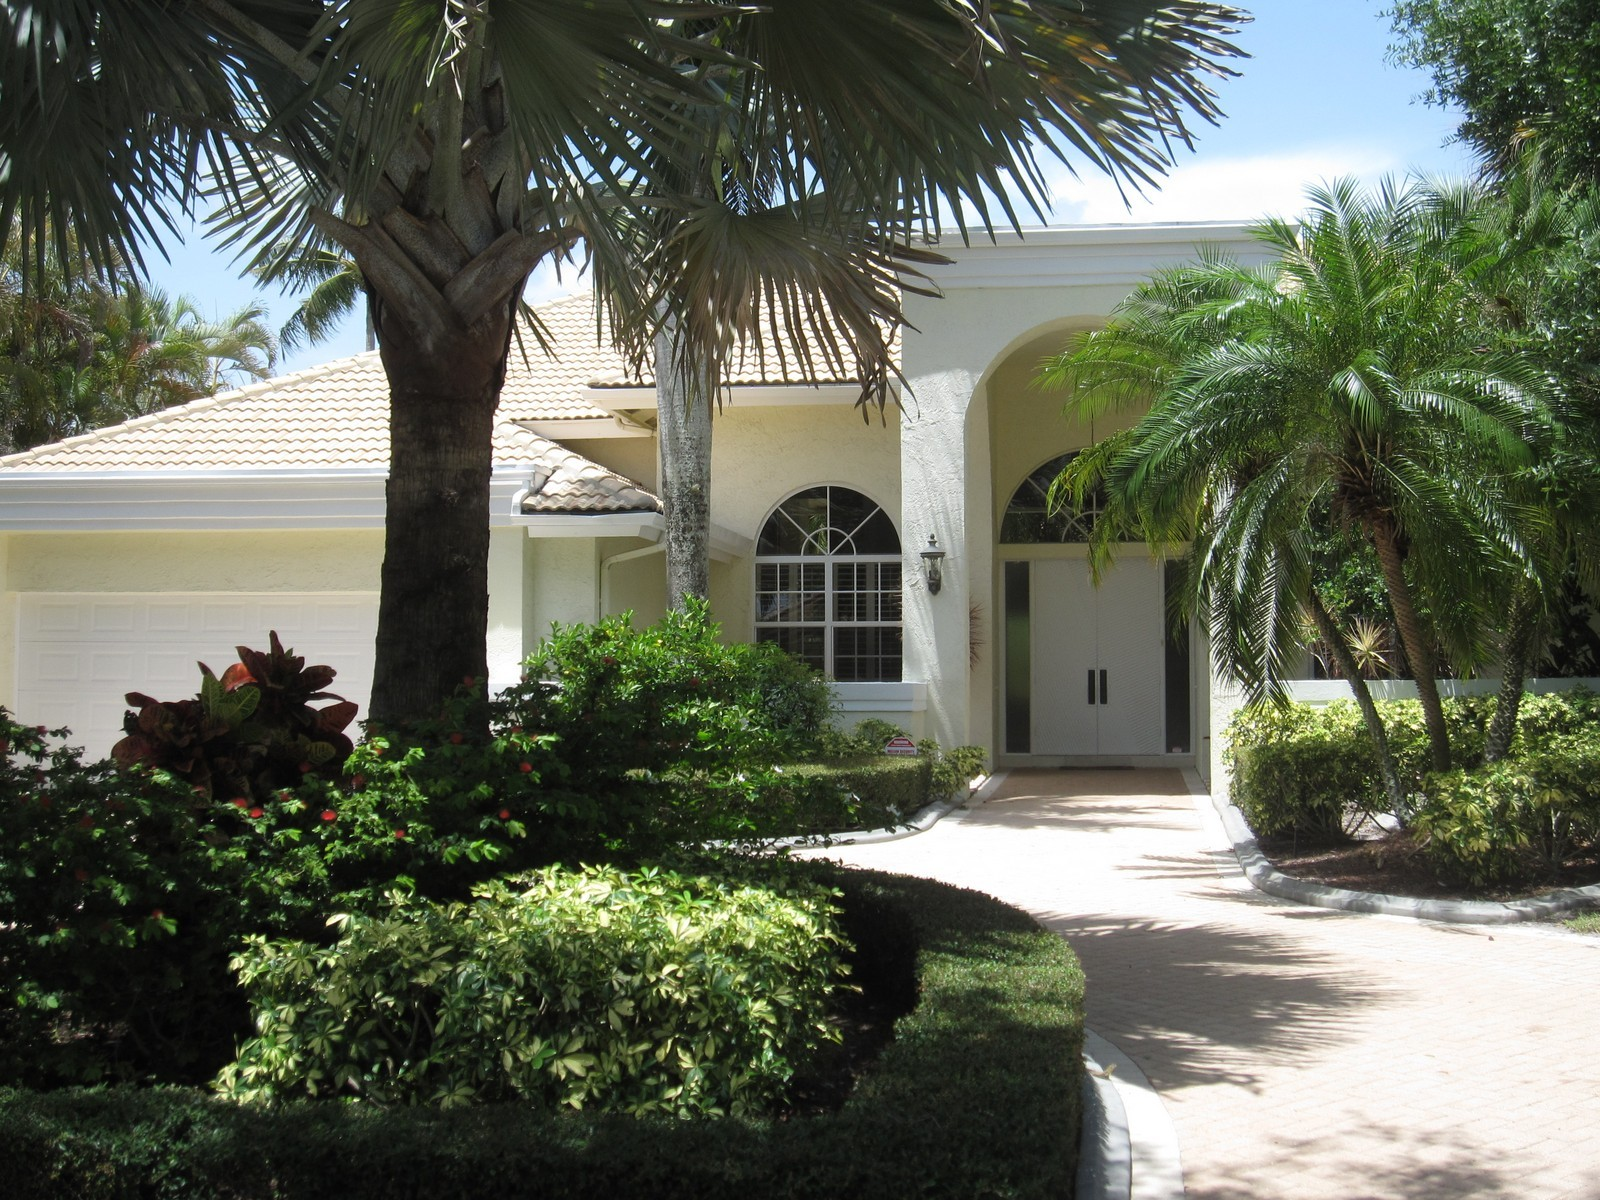 Real Estate Photography - 6329 NW 23rd Way, Boca Raton, FL, 33496 - Front View